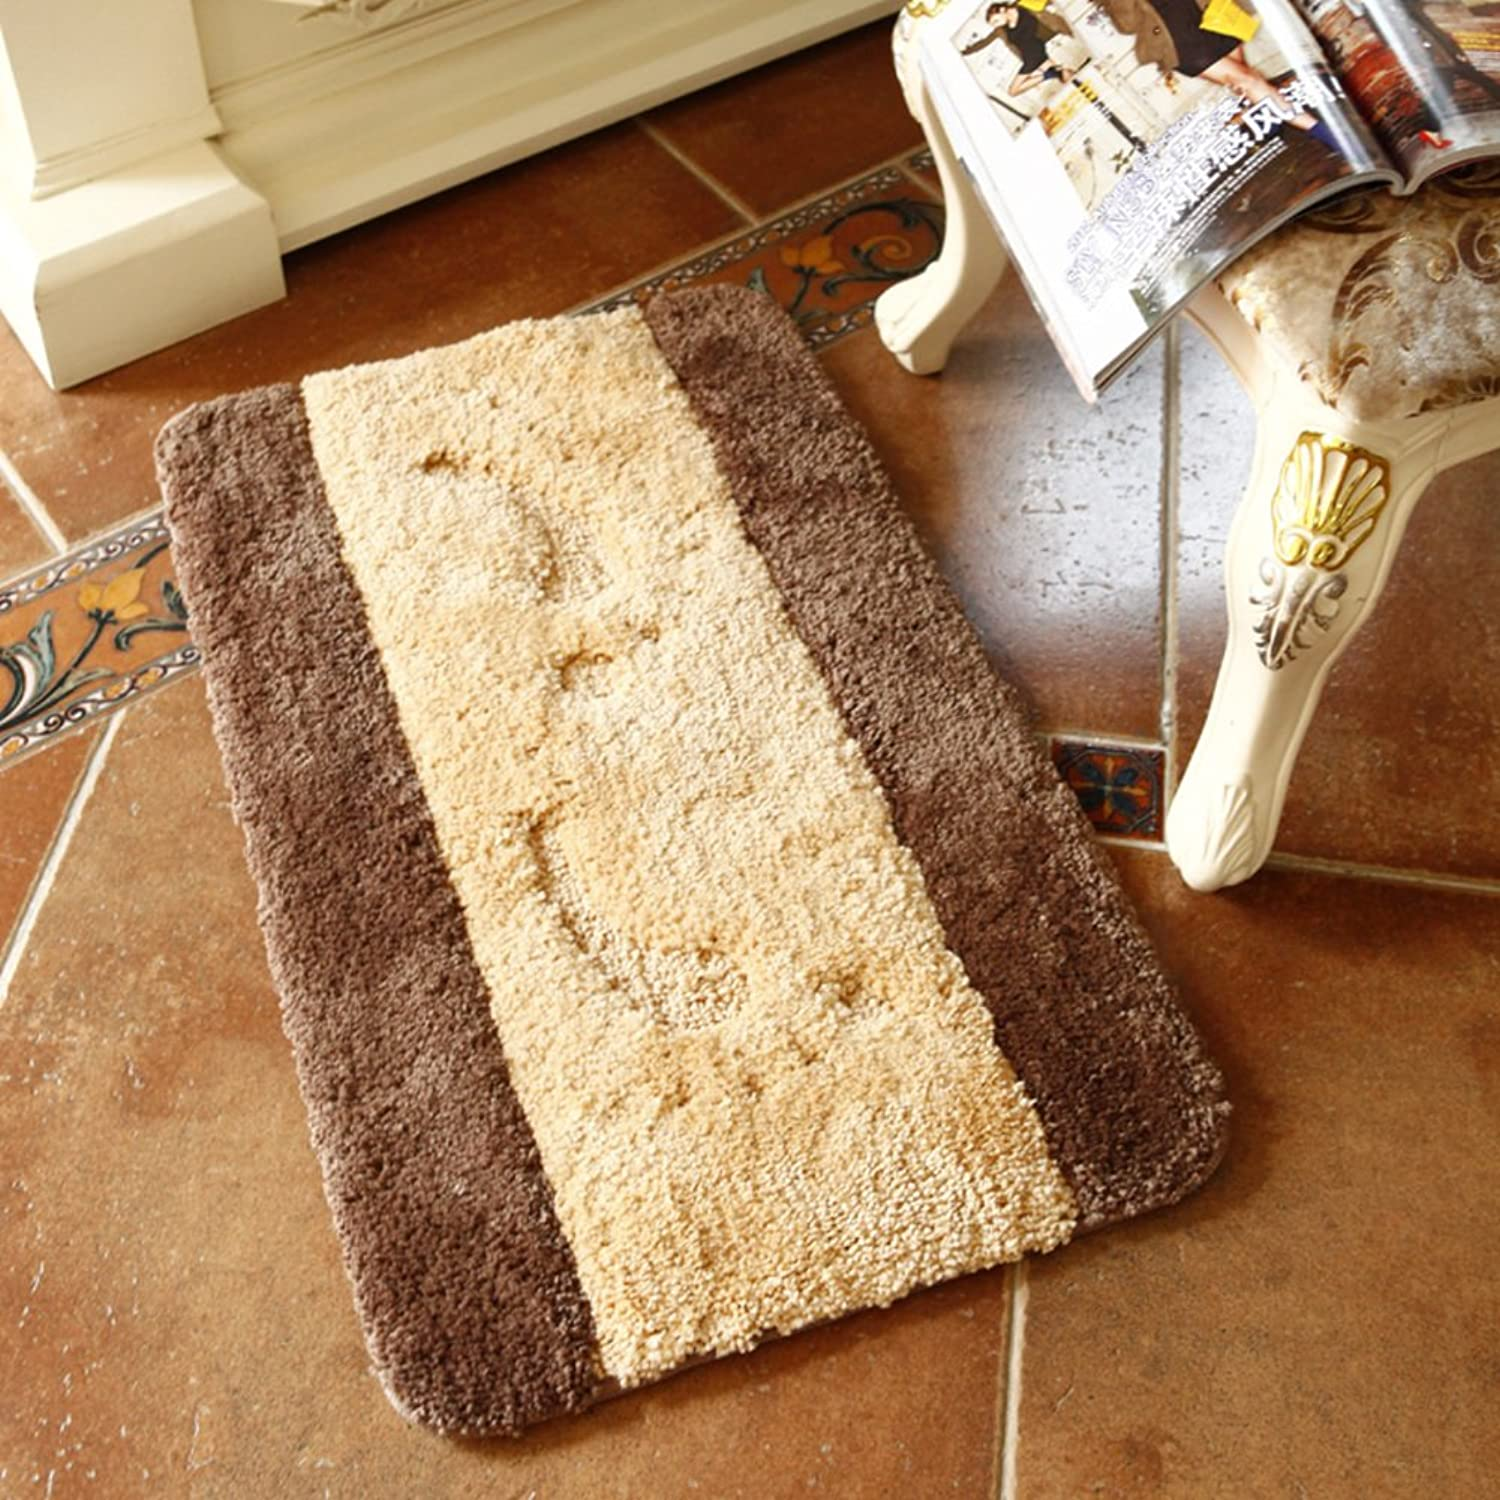 Living Room Indoor mats doormats European Household mats Bedroom Blanket for Bedroom Bathroom Water-Absorbing Non-sliping mats-E 80x120cm(31x47inch)